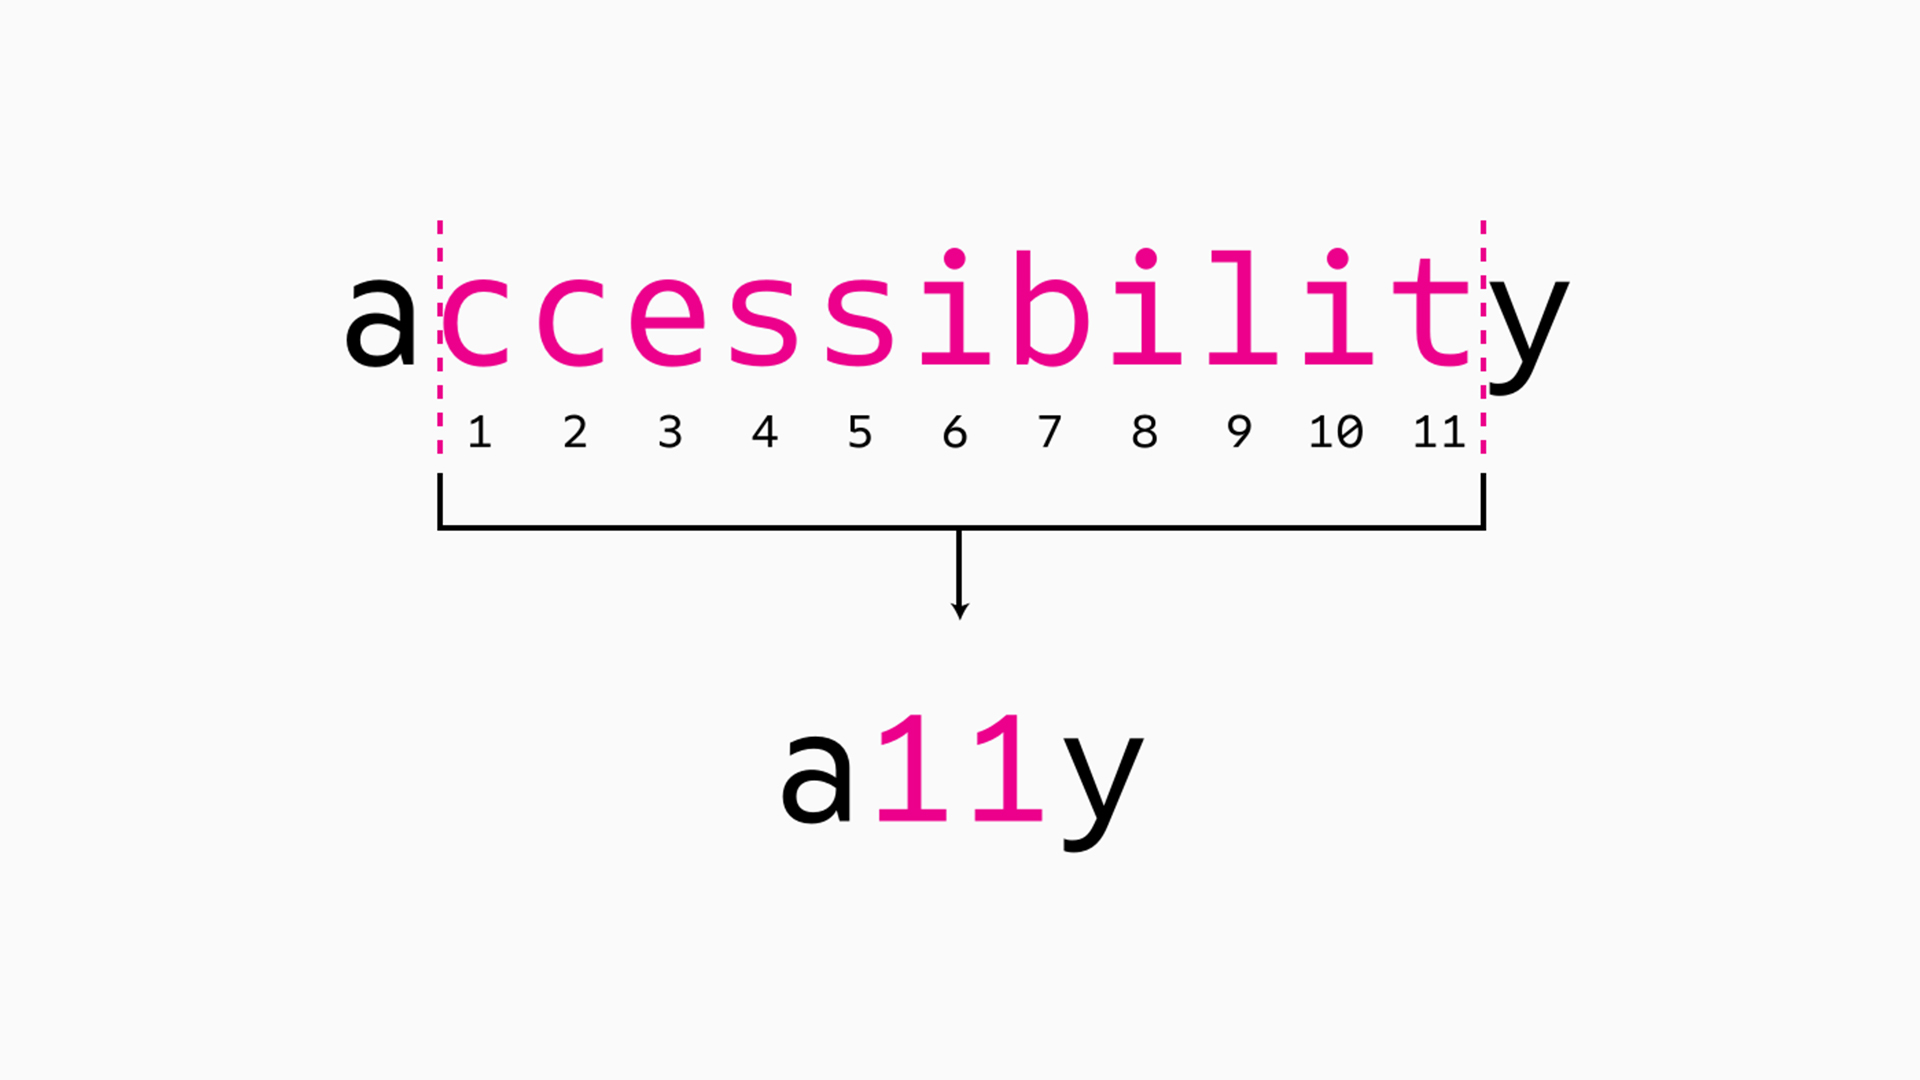 It's Time To Talk About Accessibility (a11y)